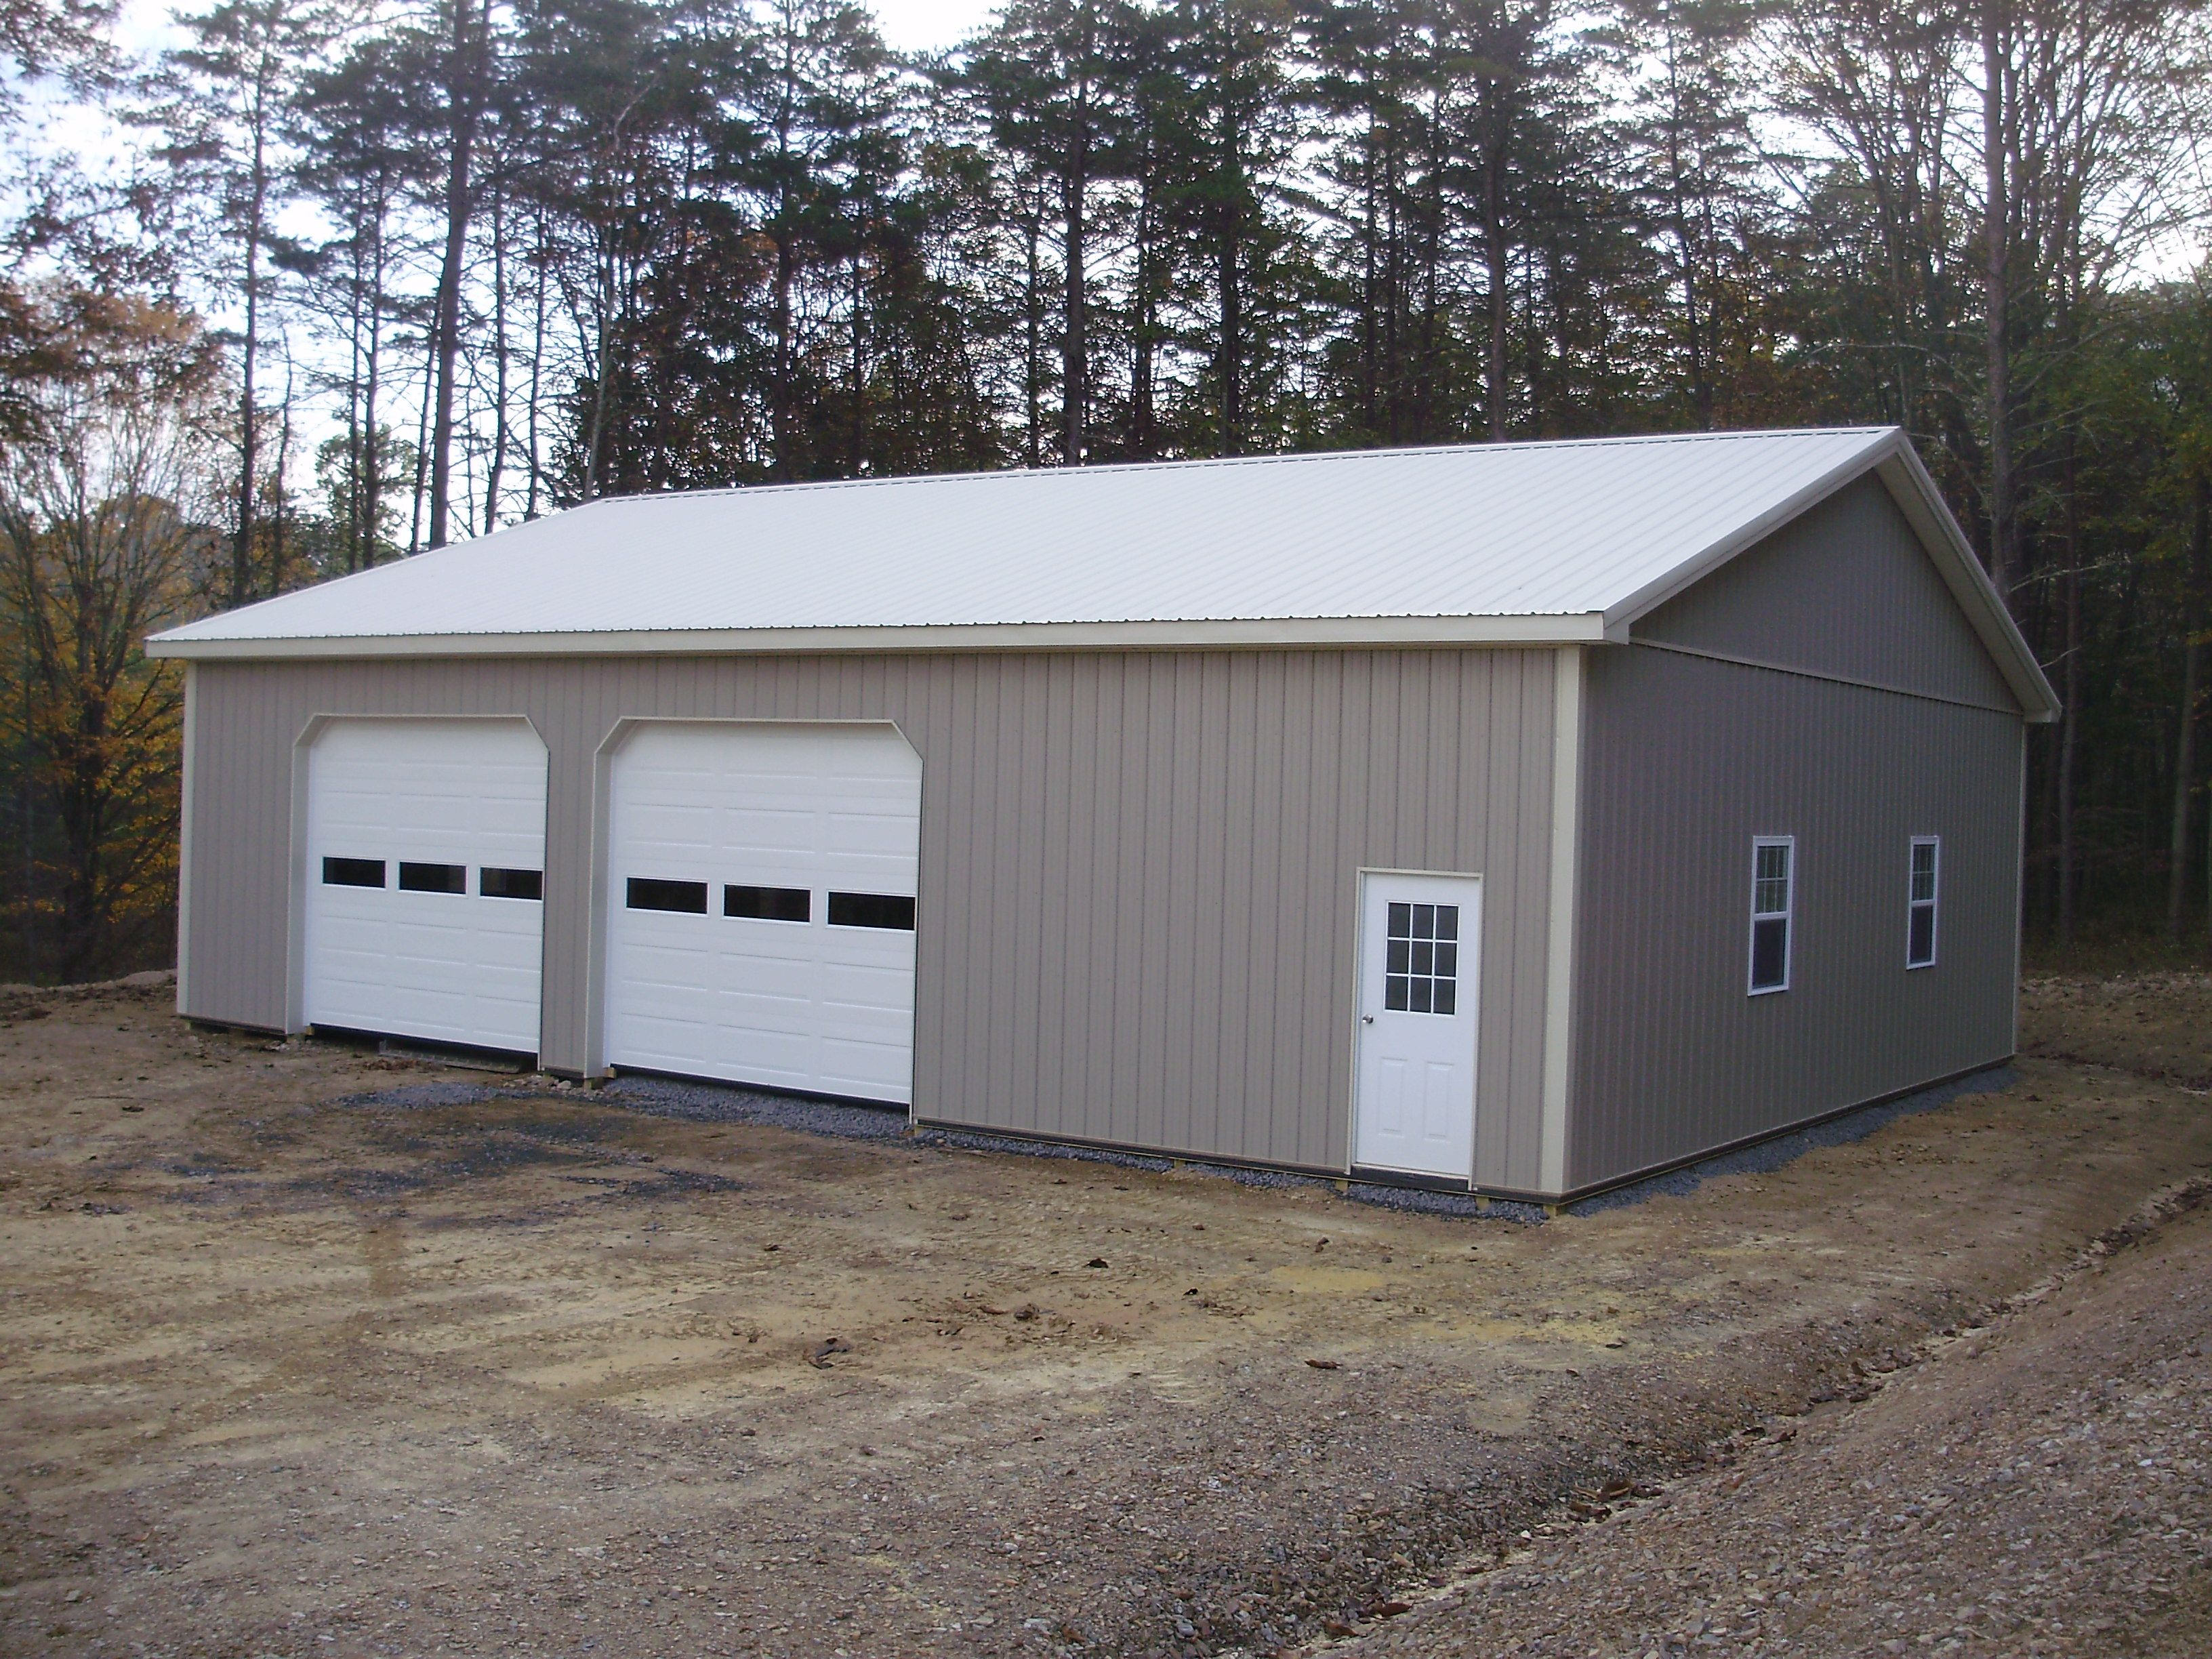 Building dimensions 40 w x 50 l x 12 h id 390 visit for Garage and shop buildings